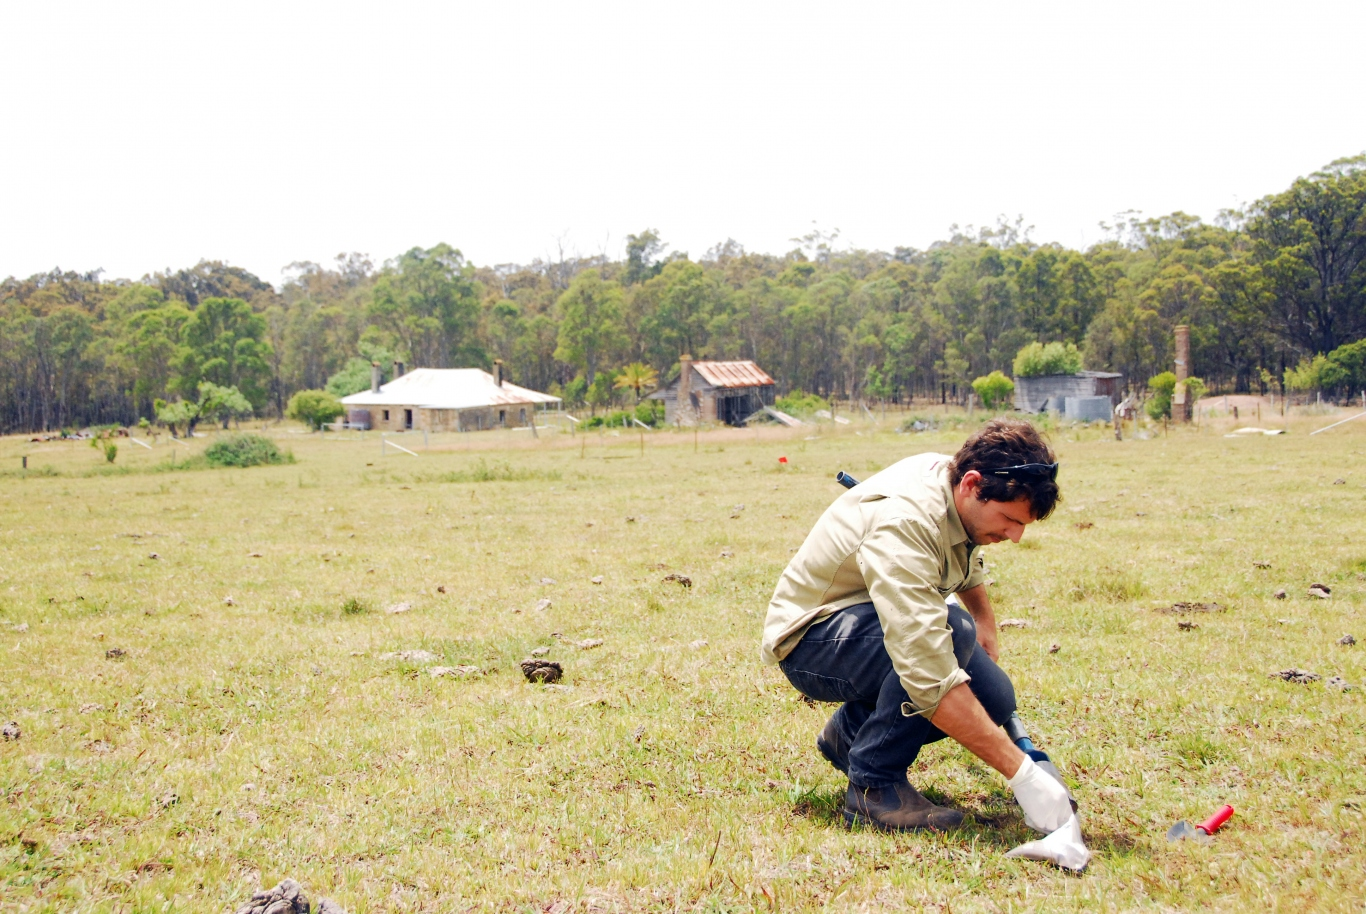 Man squatting in foreground taking samples from pasture, with house and outbuildings with bush in background.